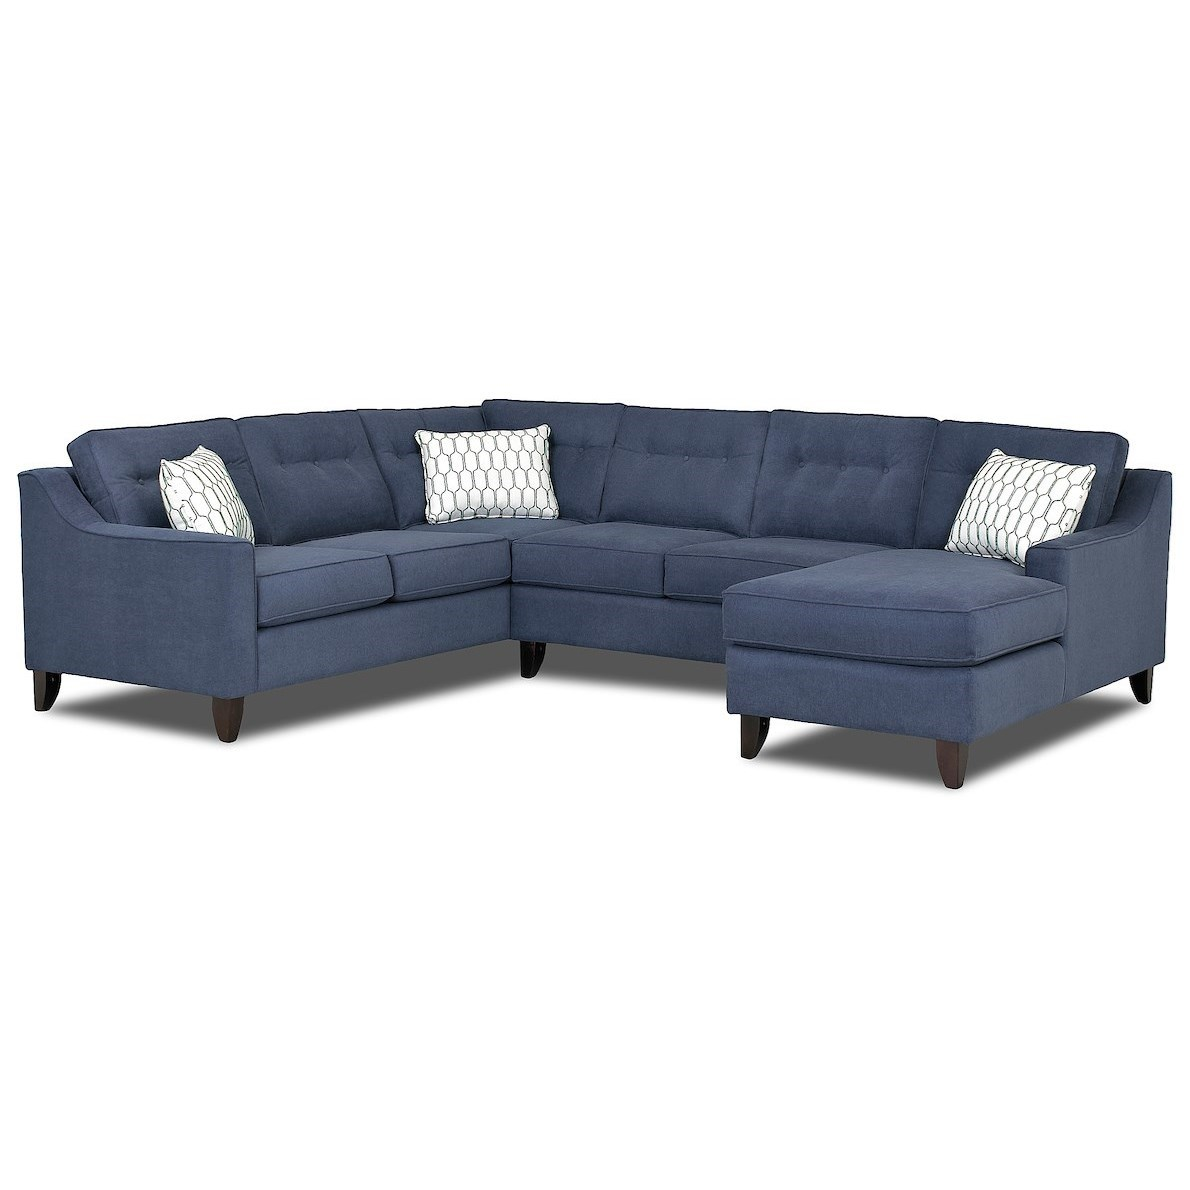 Audrina Contemporary 3 Piece Sectional Sofa by Klaussner at Johnny Janosik